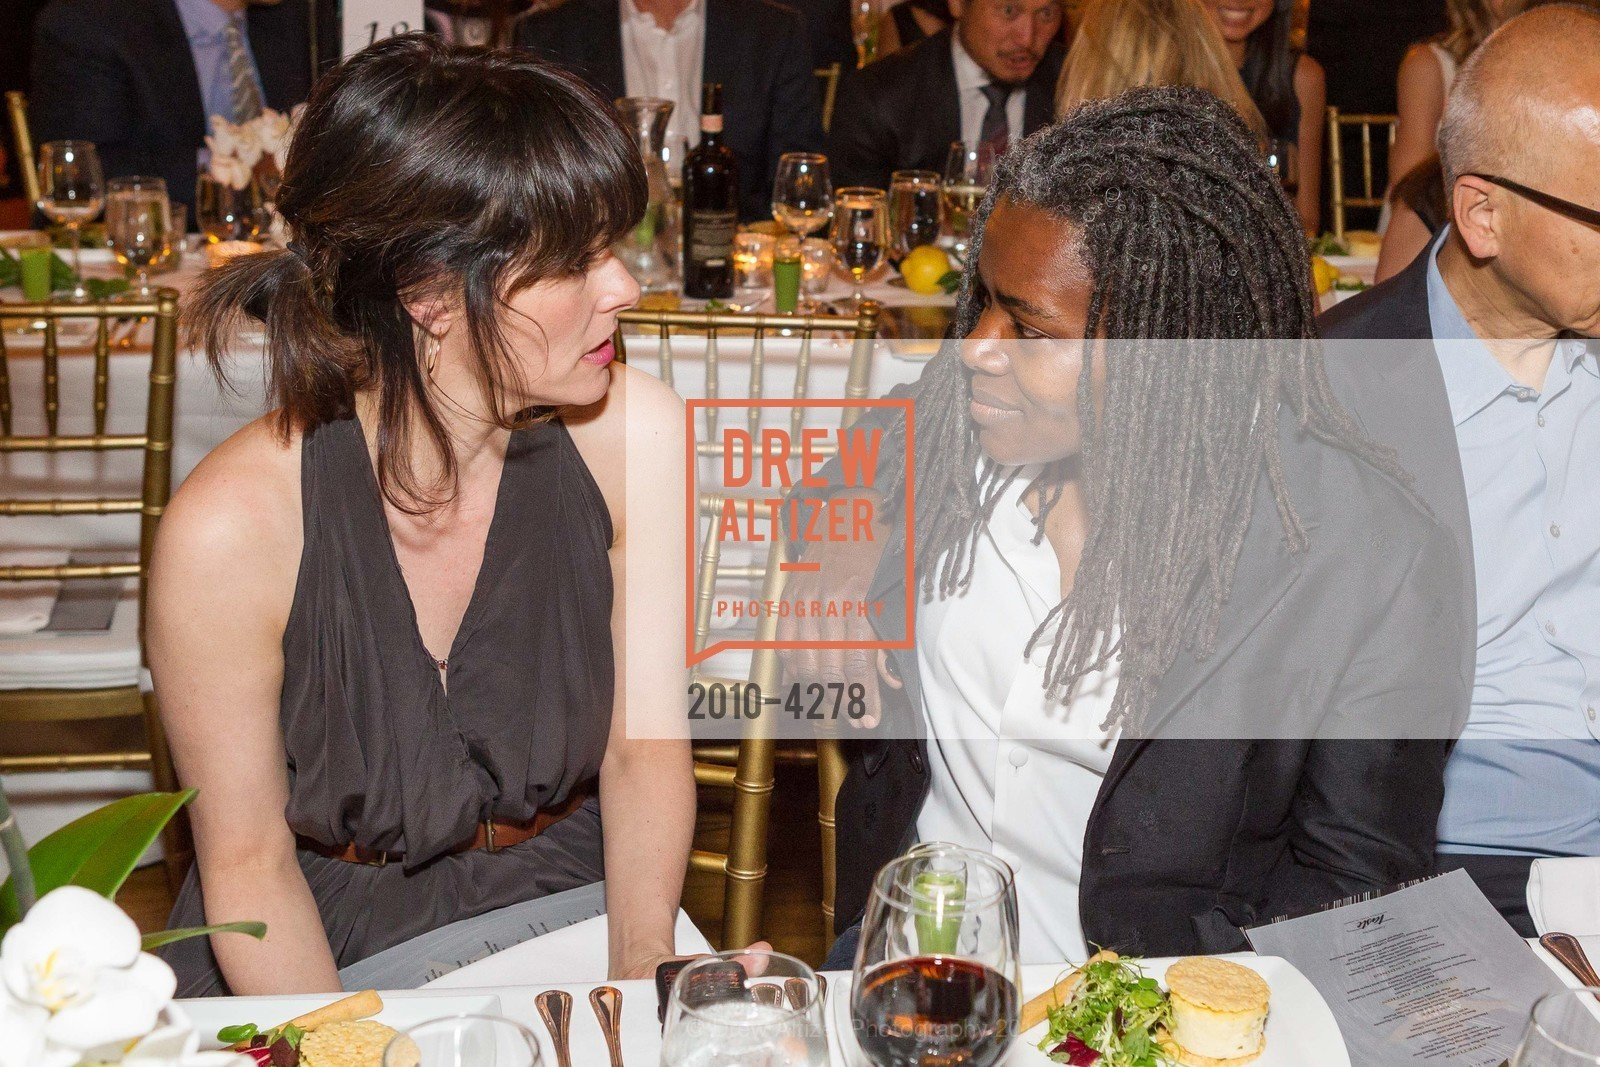 Parker Posey, Tracy Chapman, Photo #2010-4278